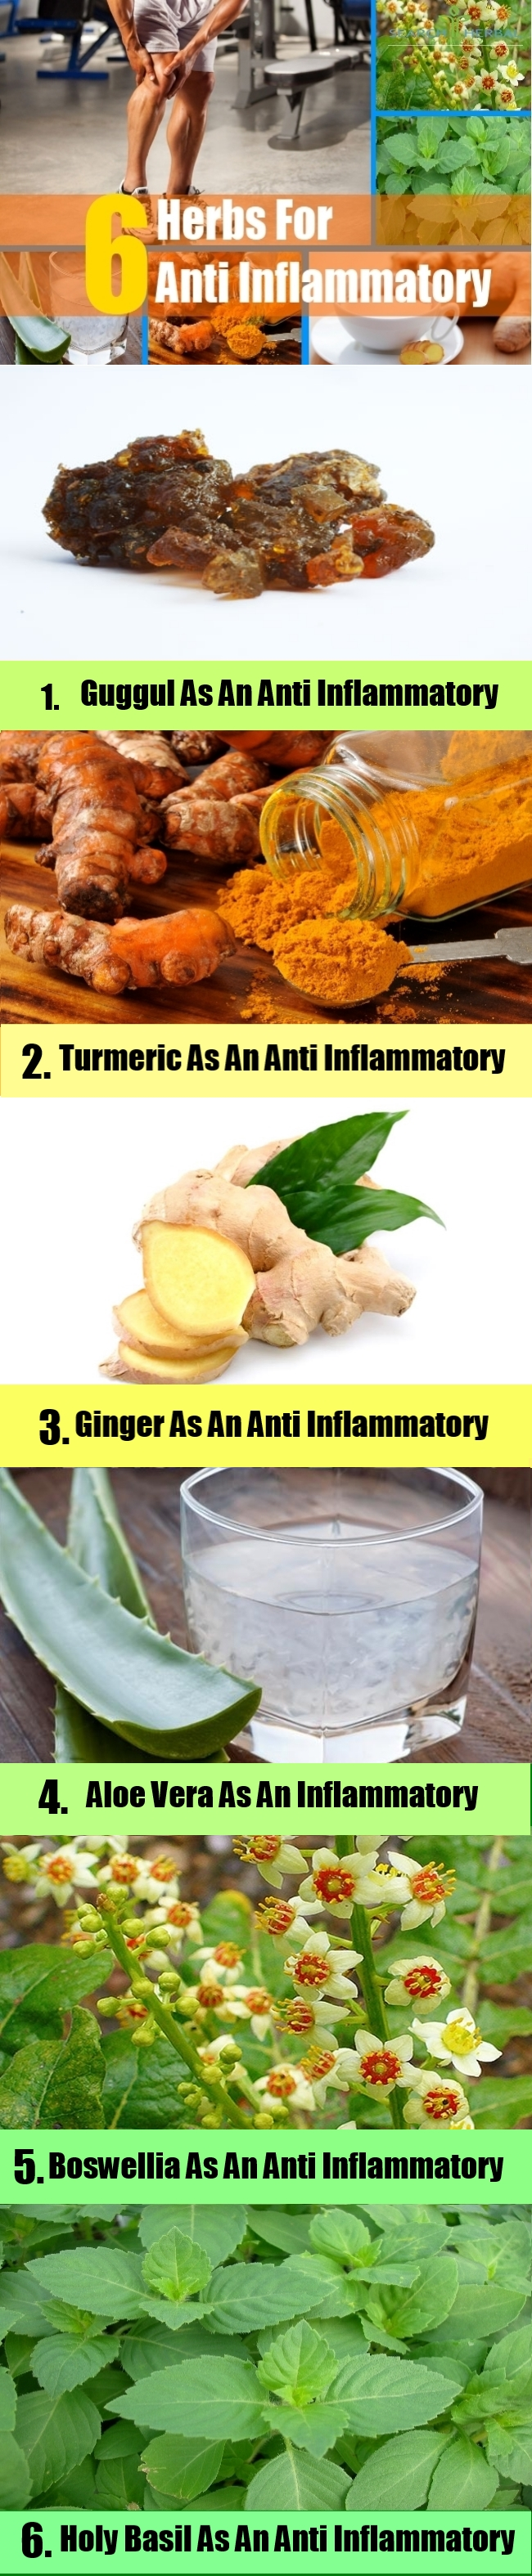 Herbs For Anti Inflammatory3